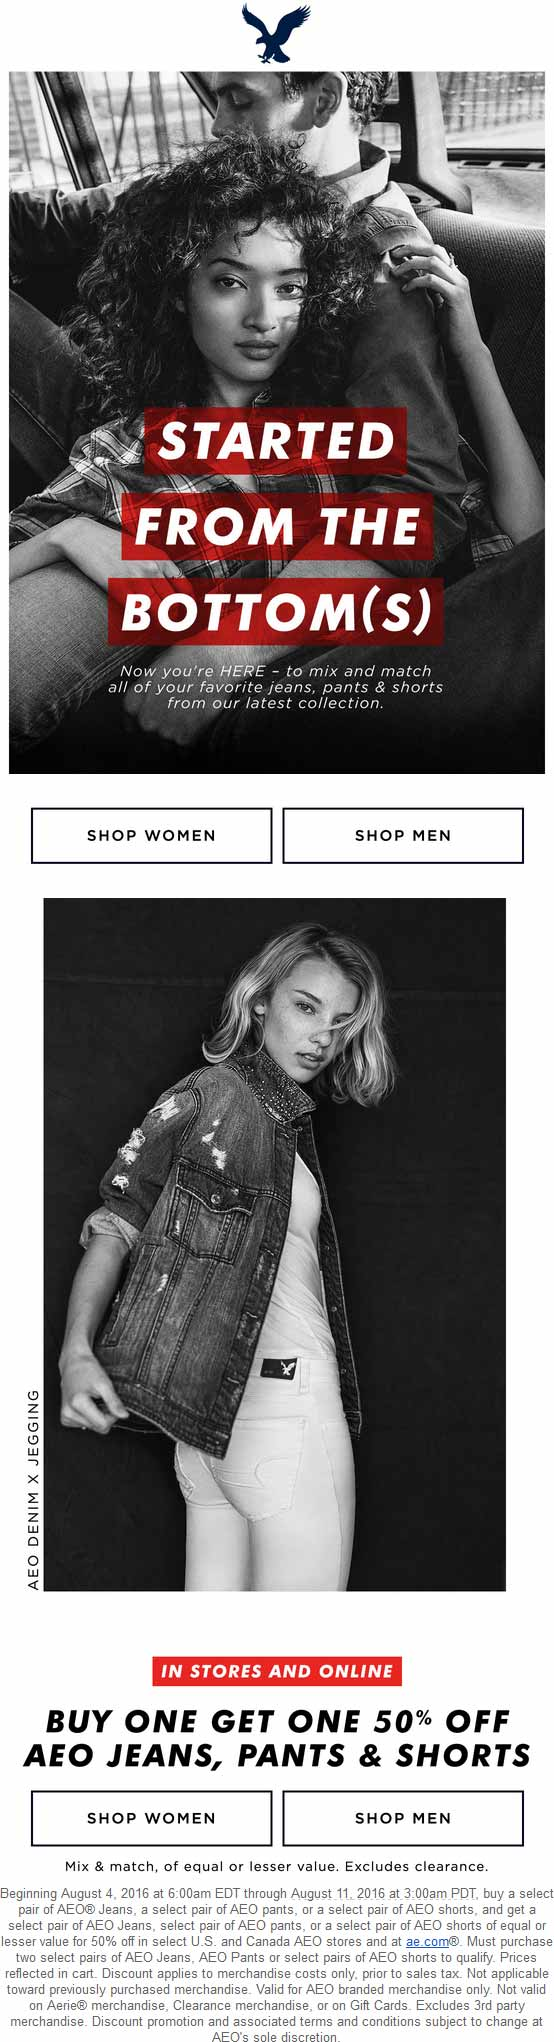 American Eagle Outfitters Coupon March 2018 Second pair jeans 50% off at American Eagle Outfitters, ditto online